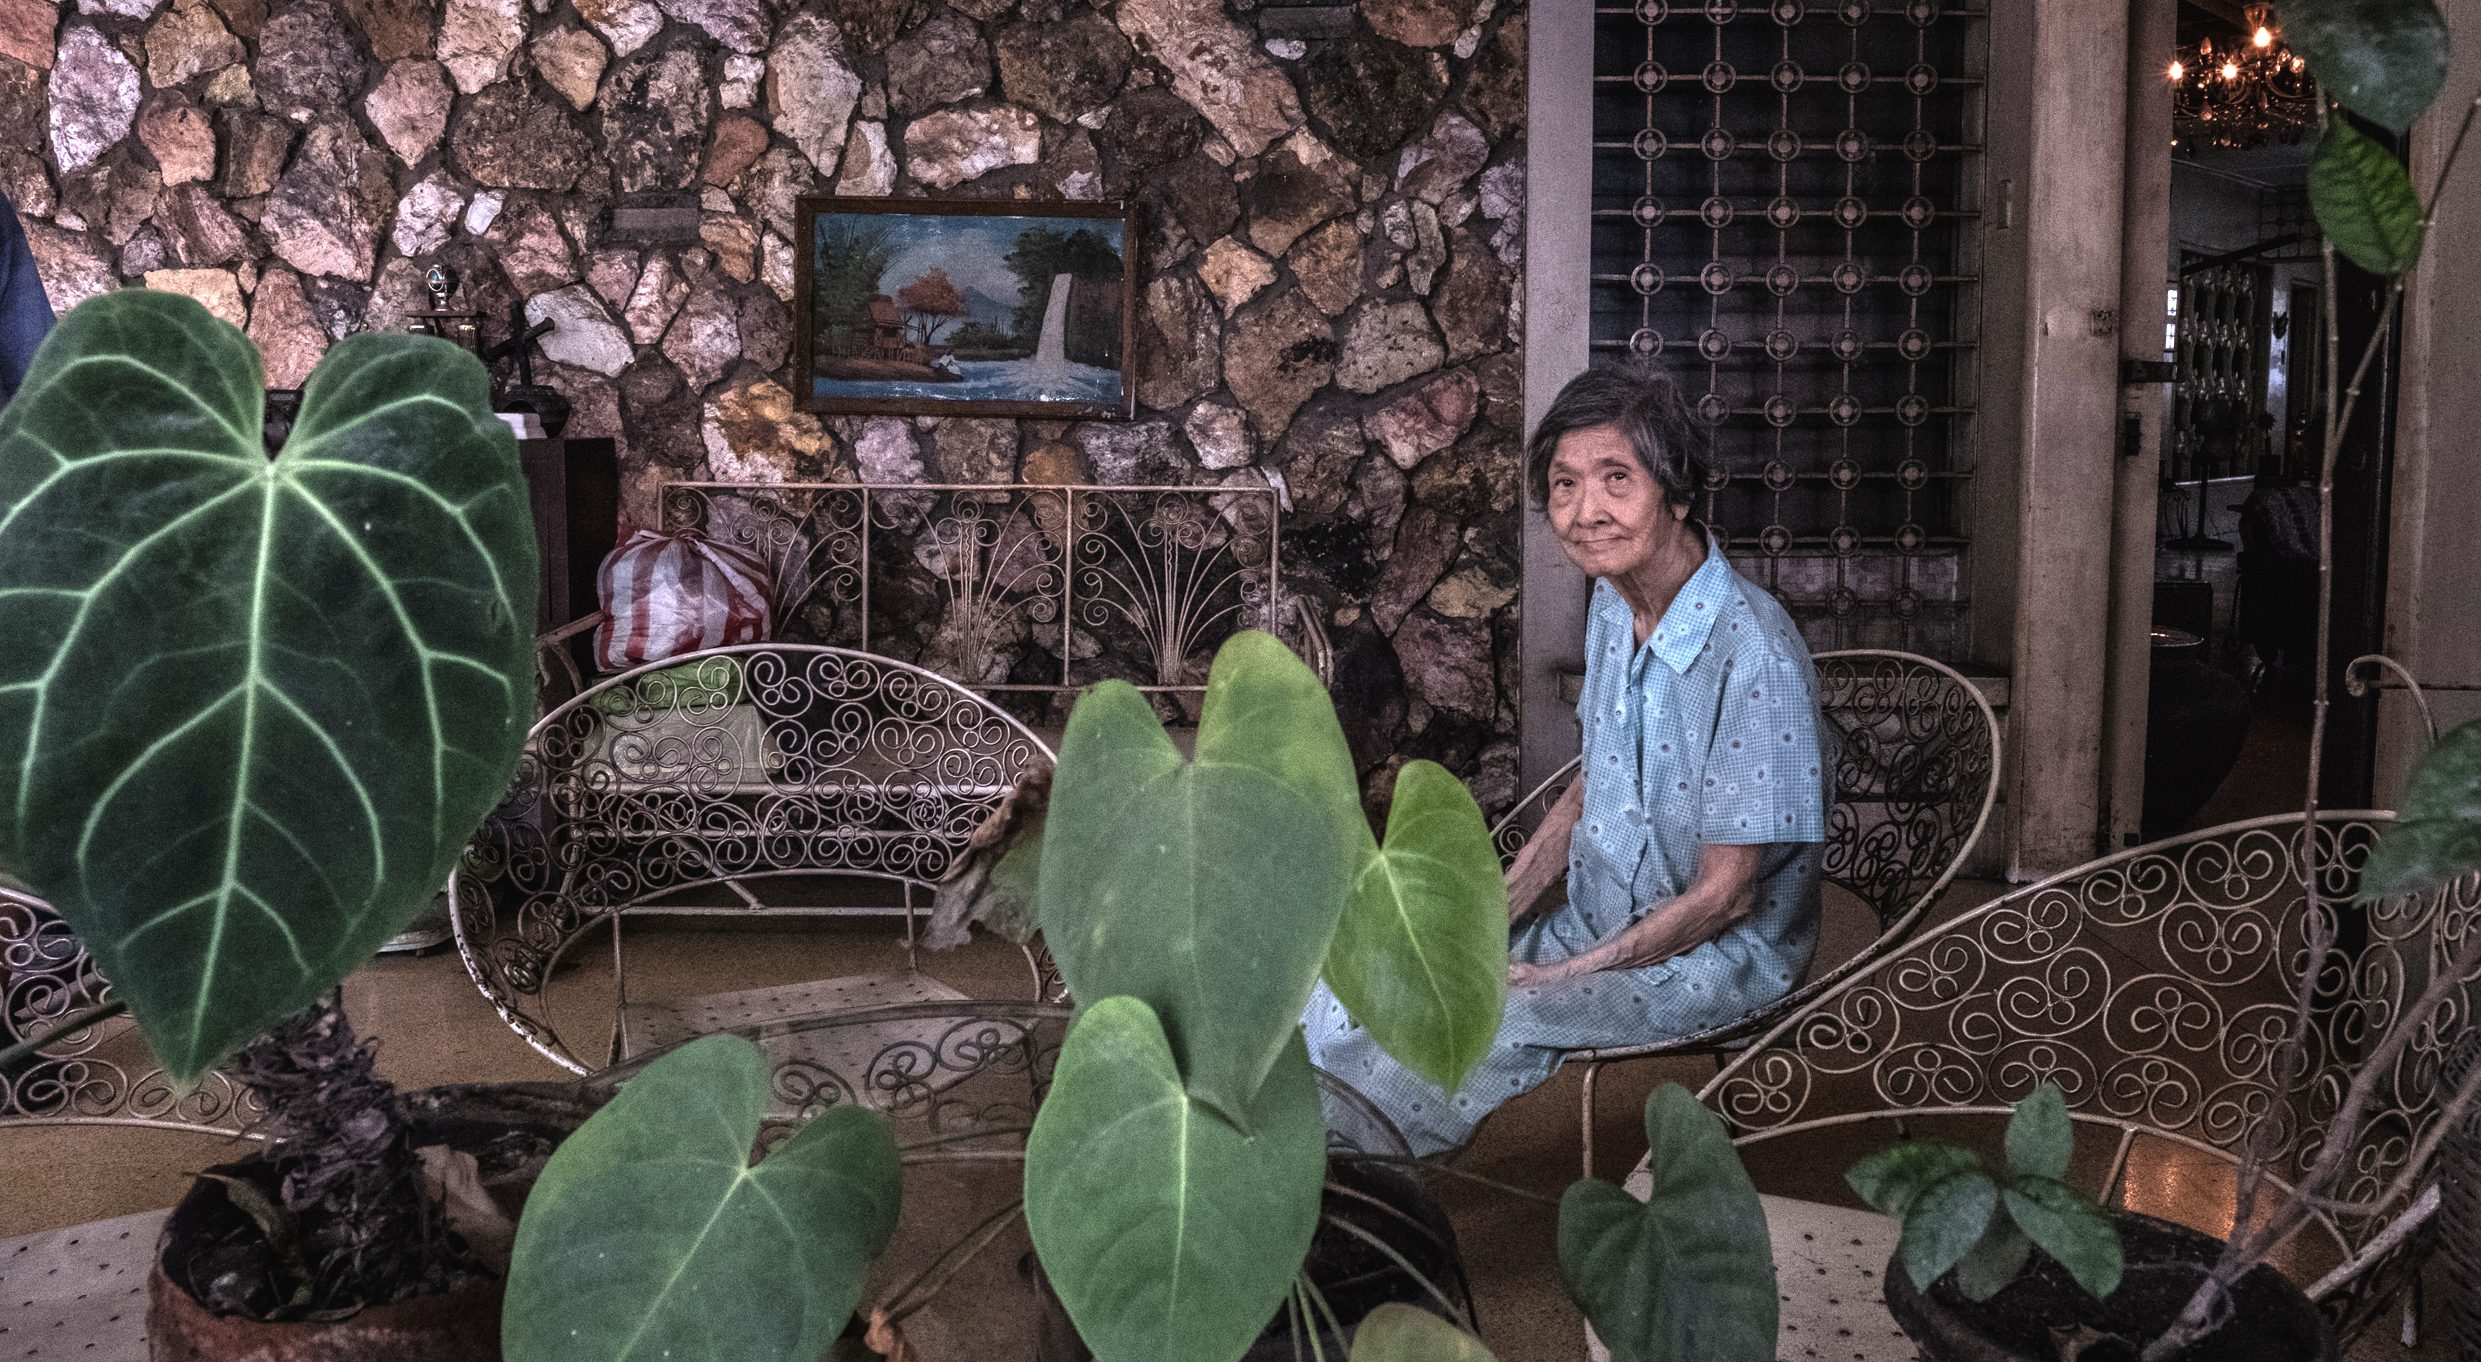 Emerita Quito: The greatest forgotten Filipino philosopher